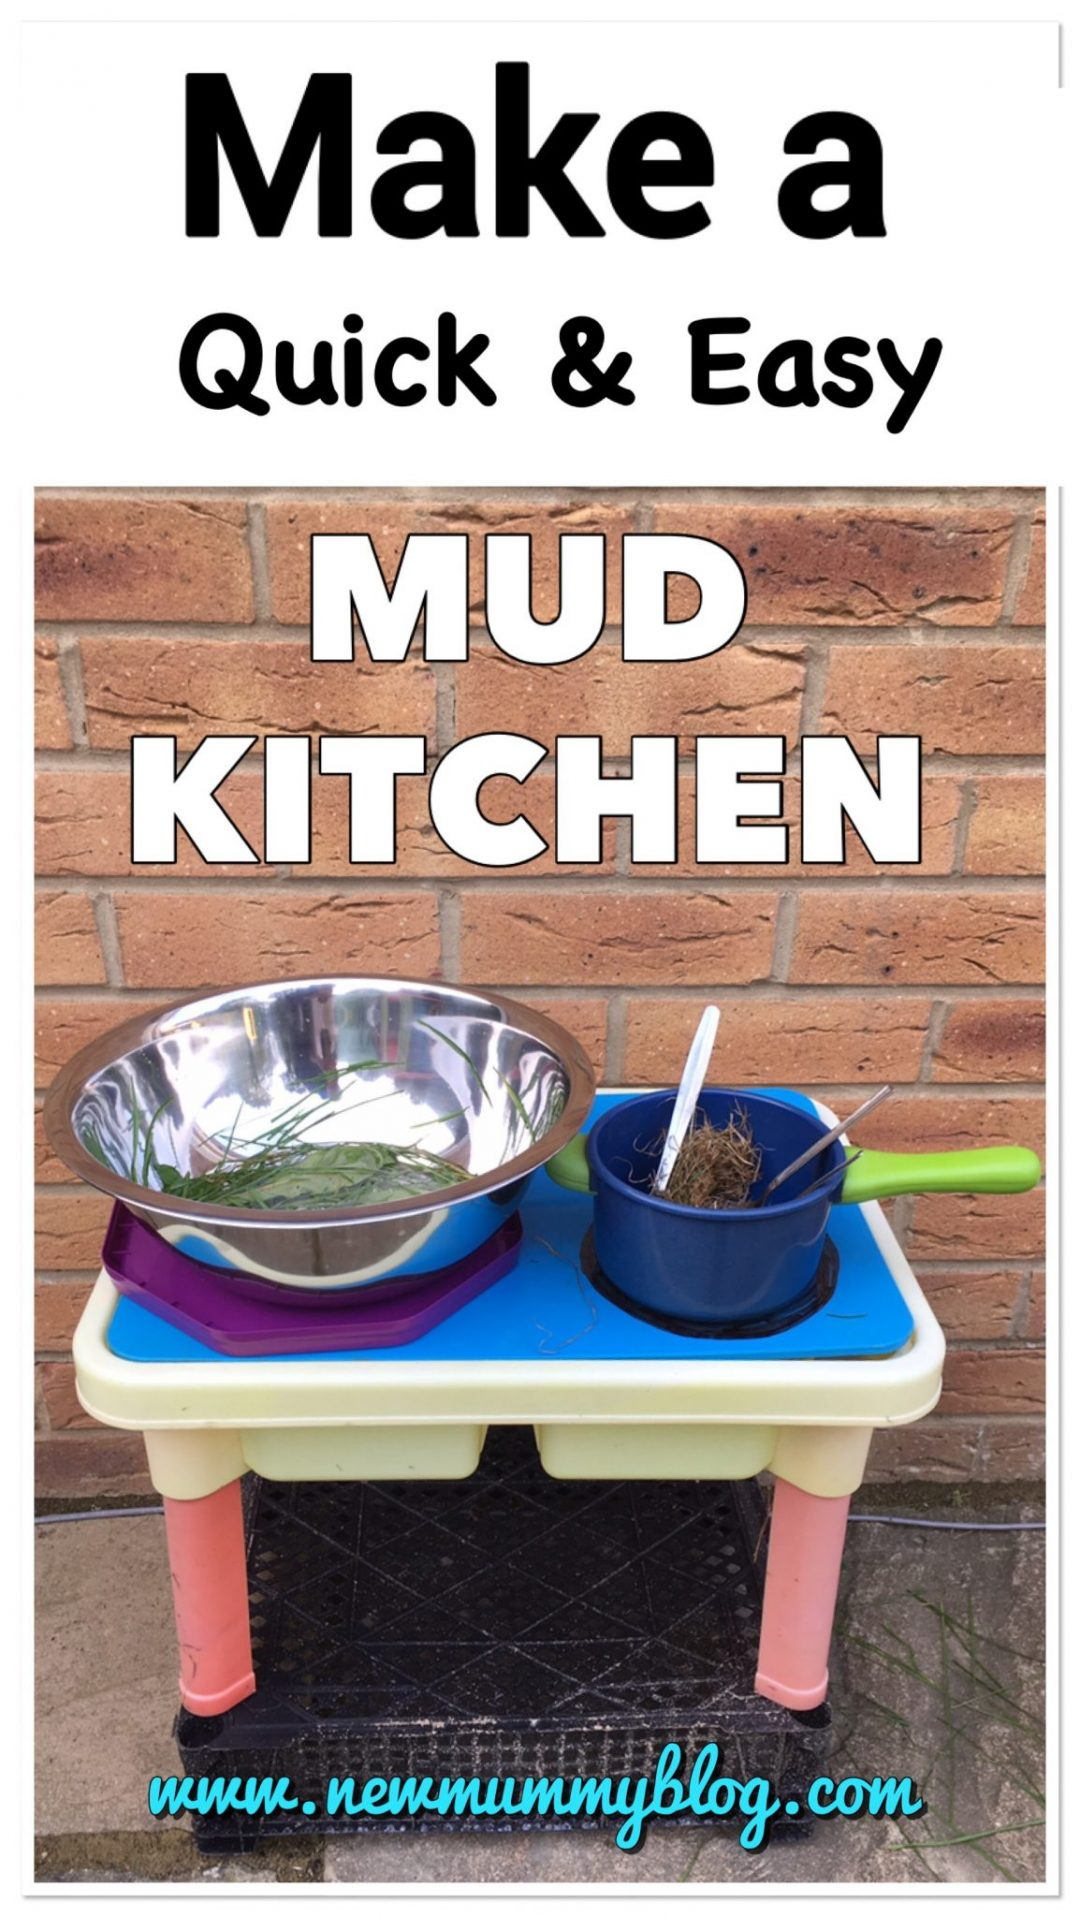 How to make a mud kitchen cheaply, quickly and easily on New Mummy Blog Toddler Activities for the Garden